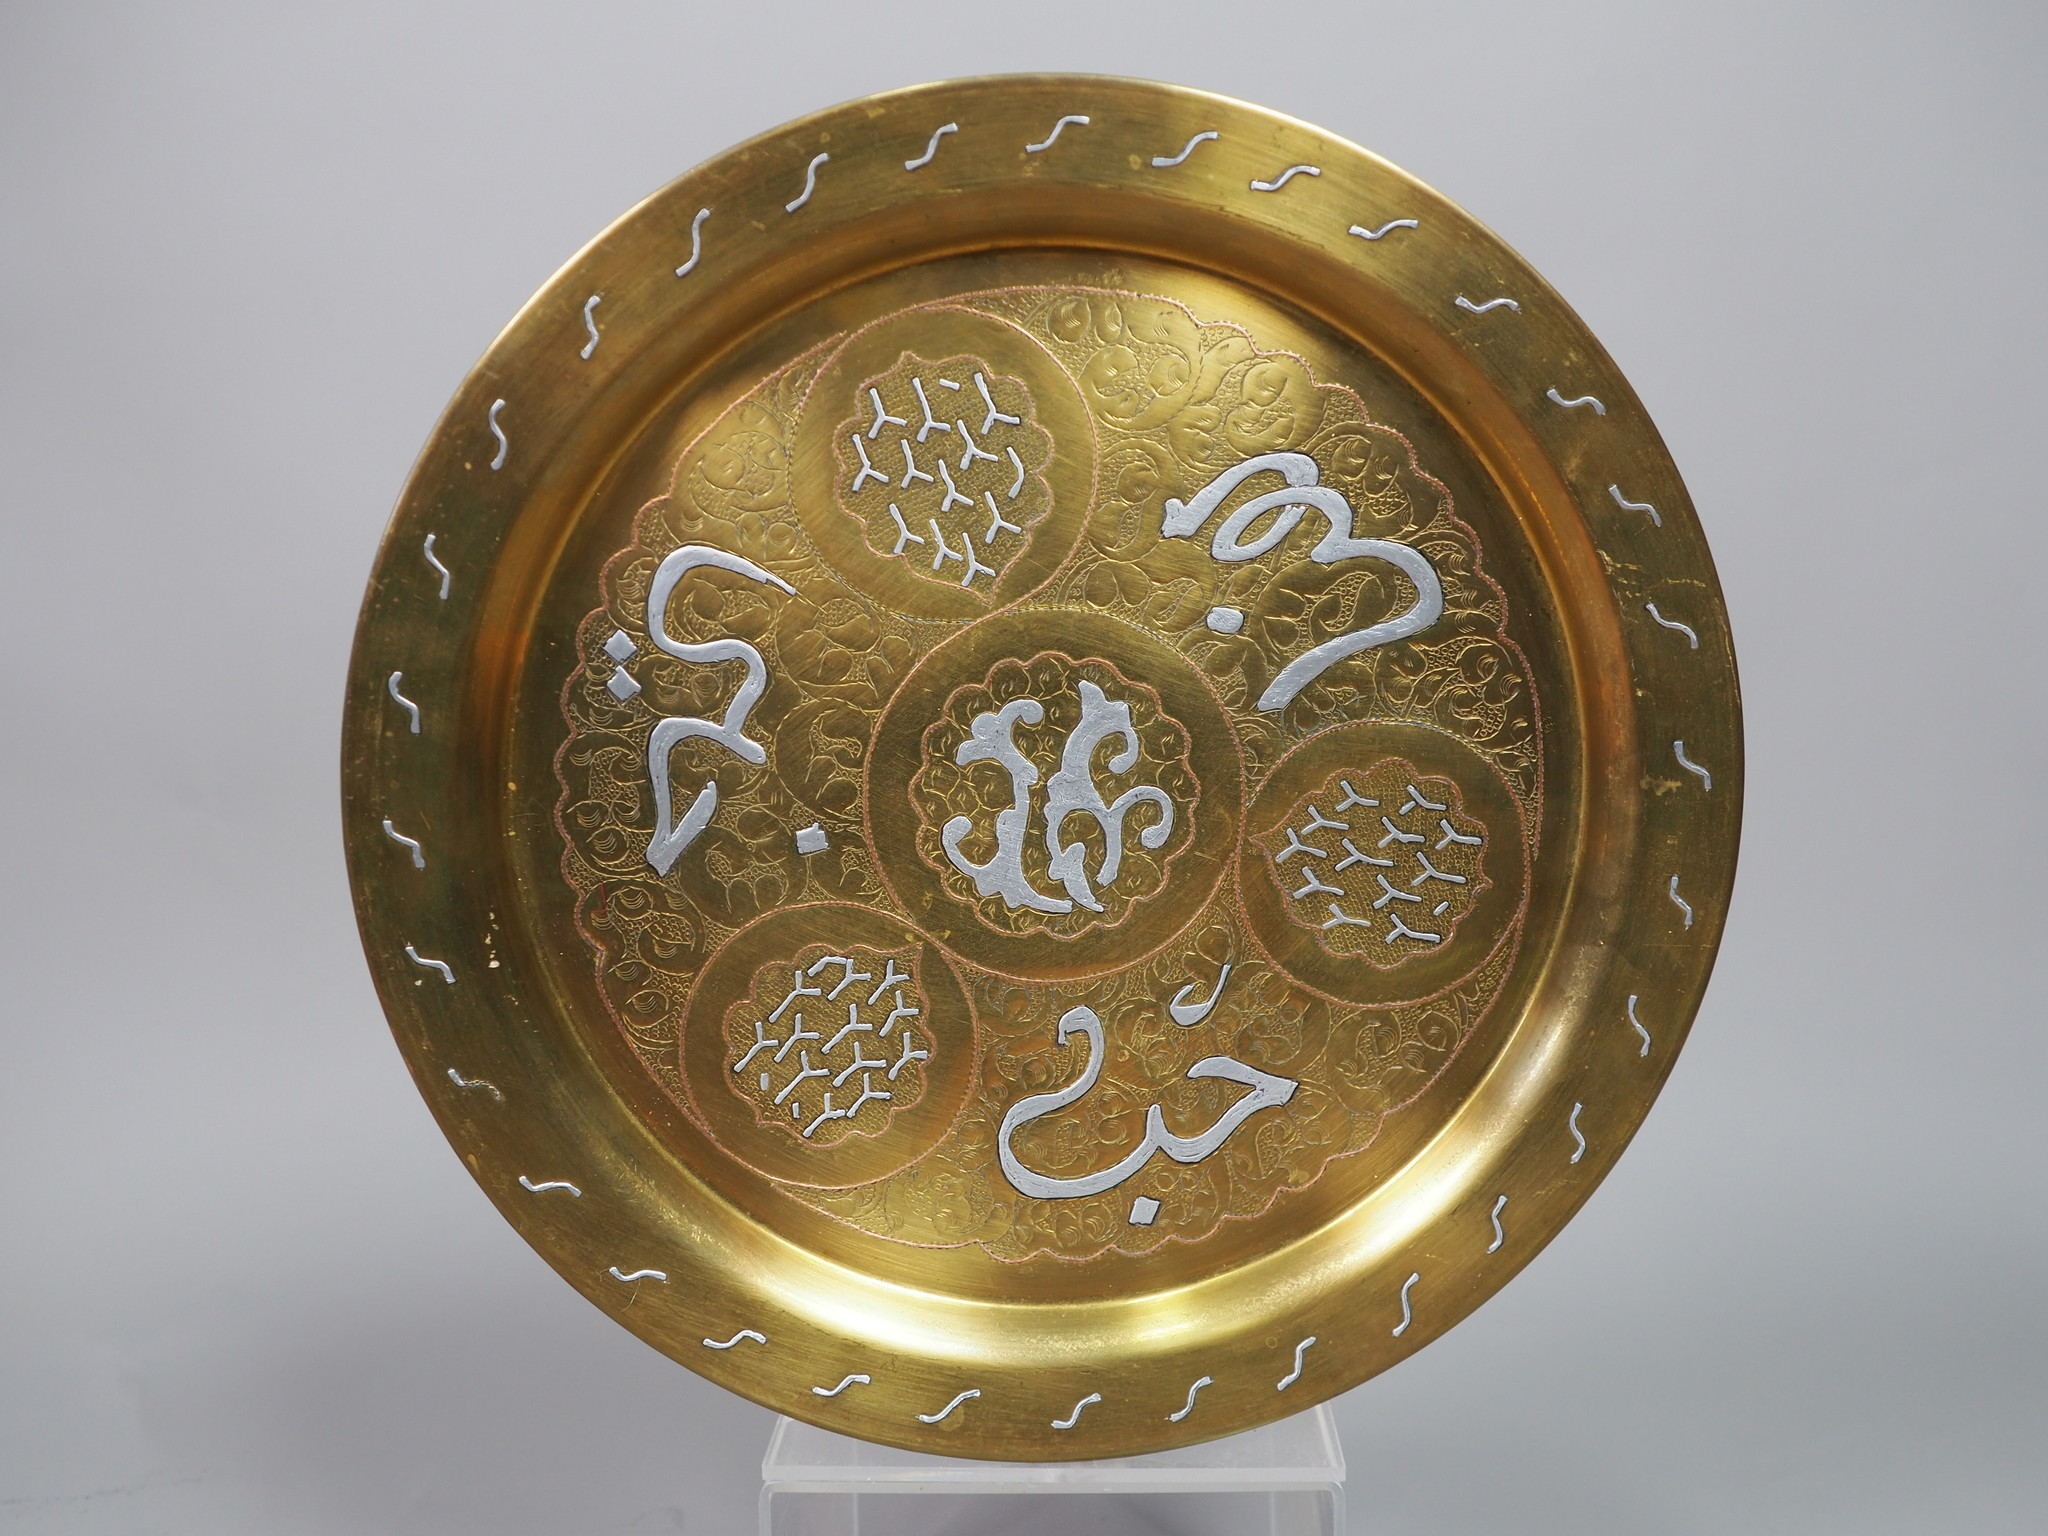 34 cm  Antique ottoman orient Islamic Hammer Engraved Brass Tray Syria Morocco, Egypt Mamluk Cairoware with arabic calligraphy K29